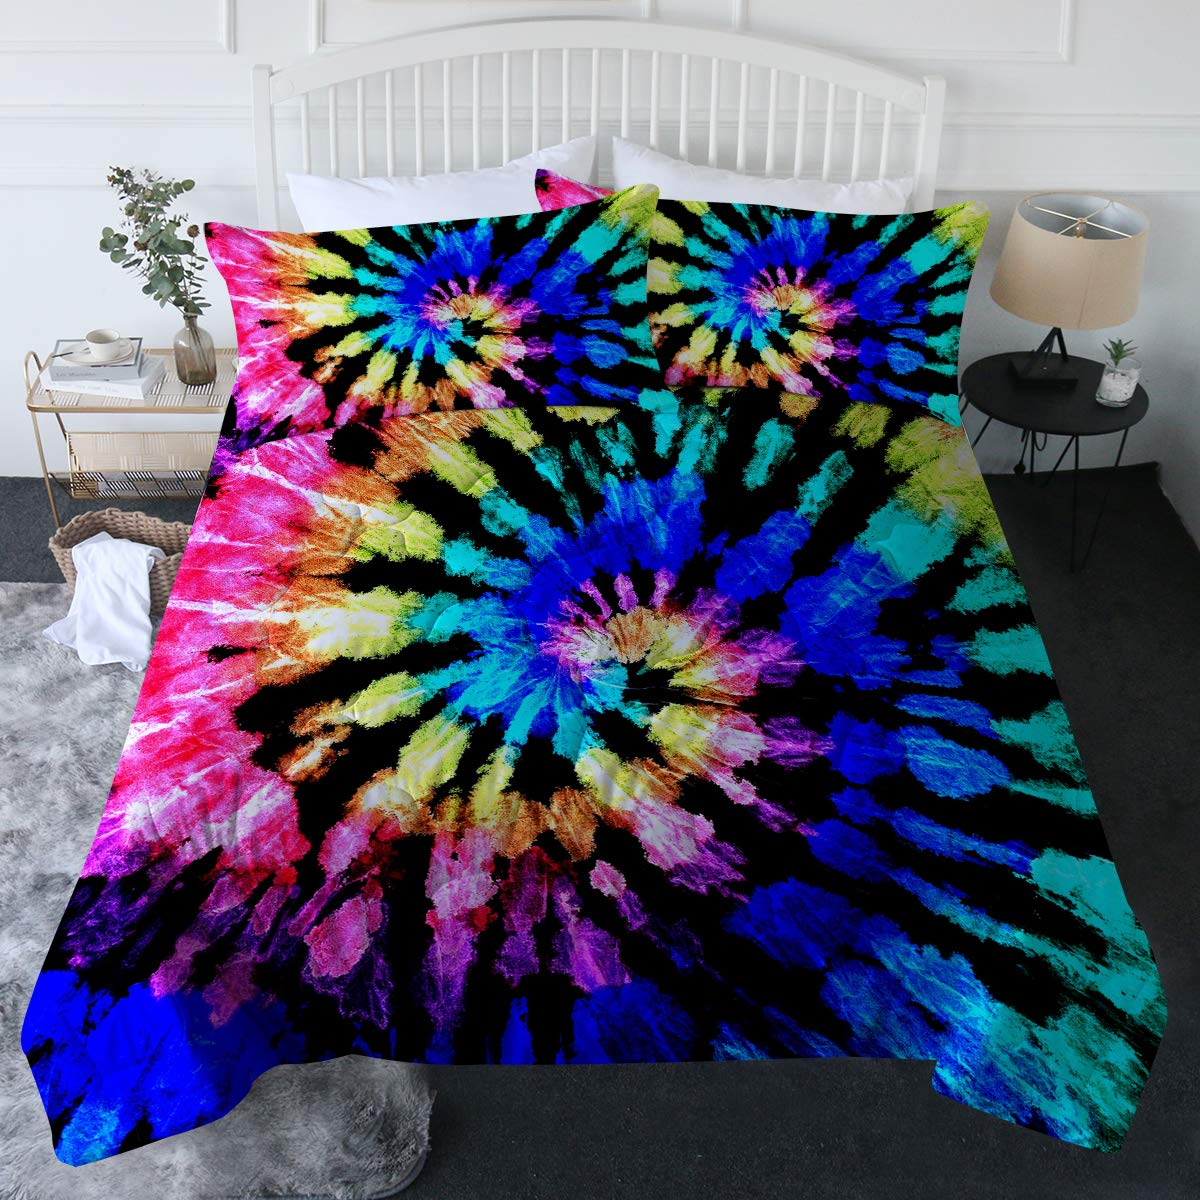 BlessLiving 3 Piece Tie Dye Comforter Set with Pillow Shams – Colorful Hippie Bedding Set with 3D Printed Designs Reversible Comforter Full/Queen Size – Soft Comfortable Machine Washable